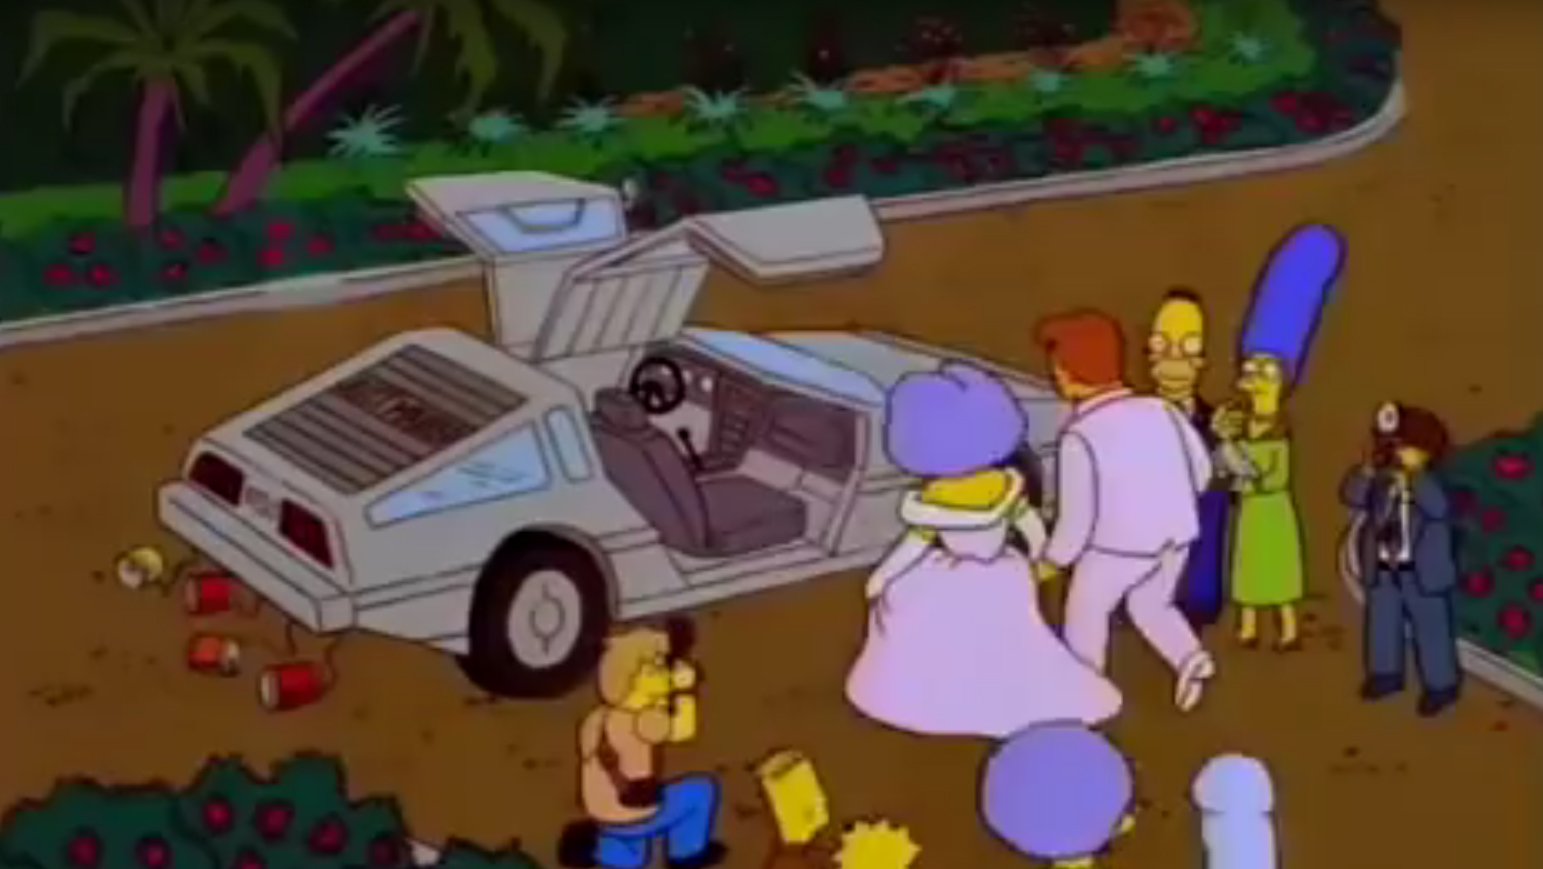 10 Autos au den Simpons DeLorean